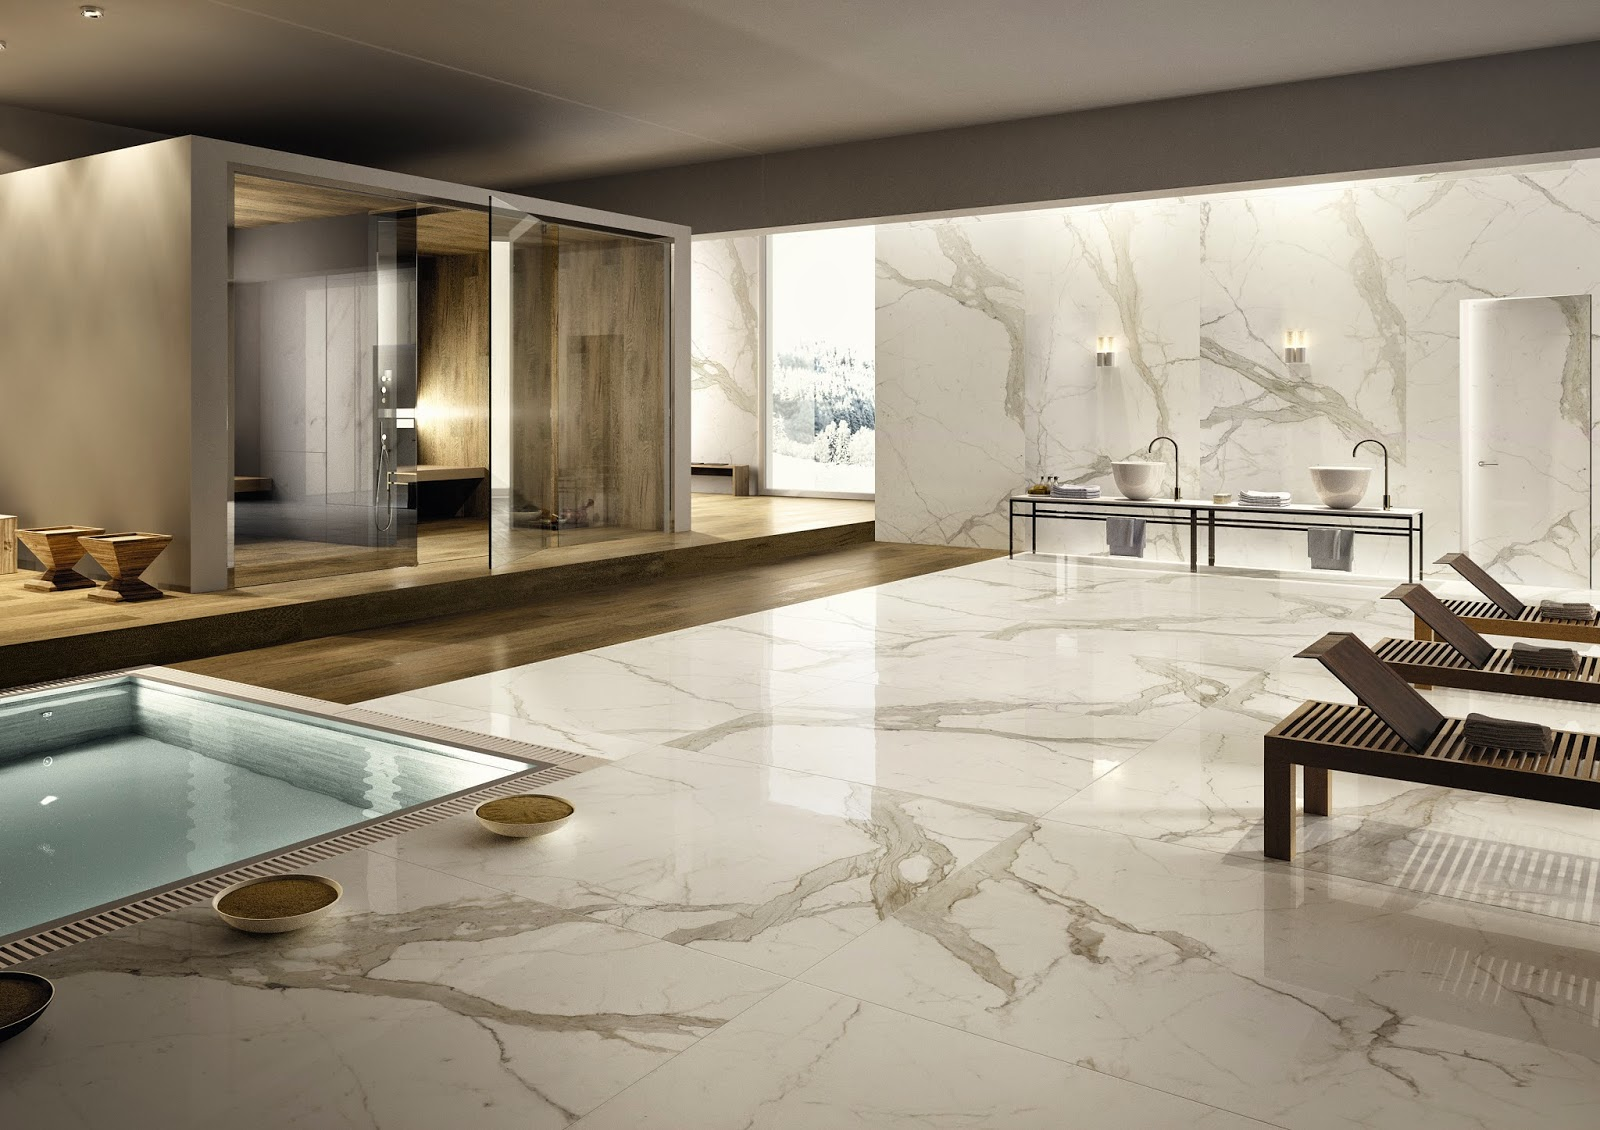 nassar for marble and granite